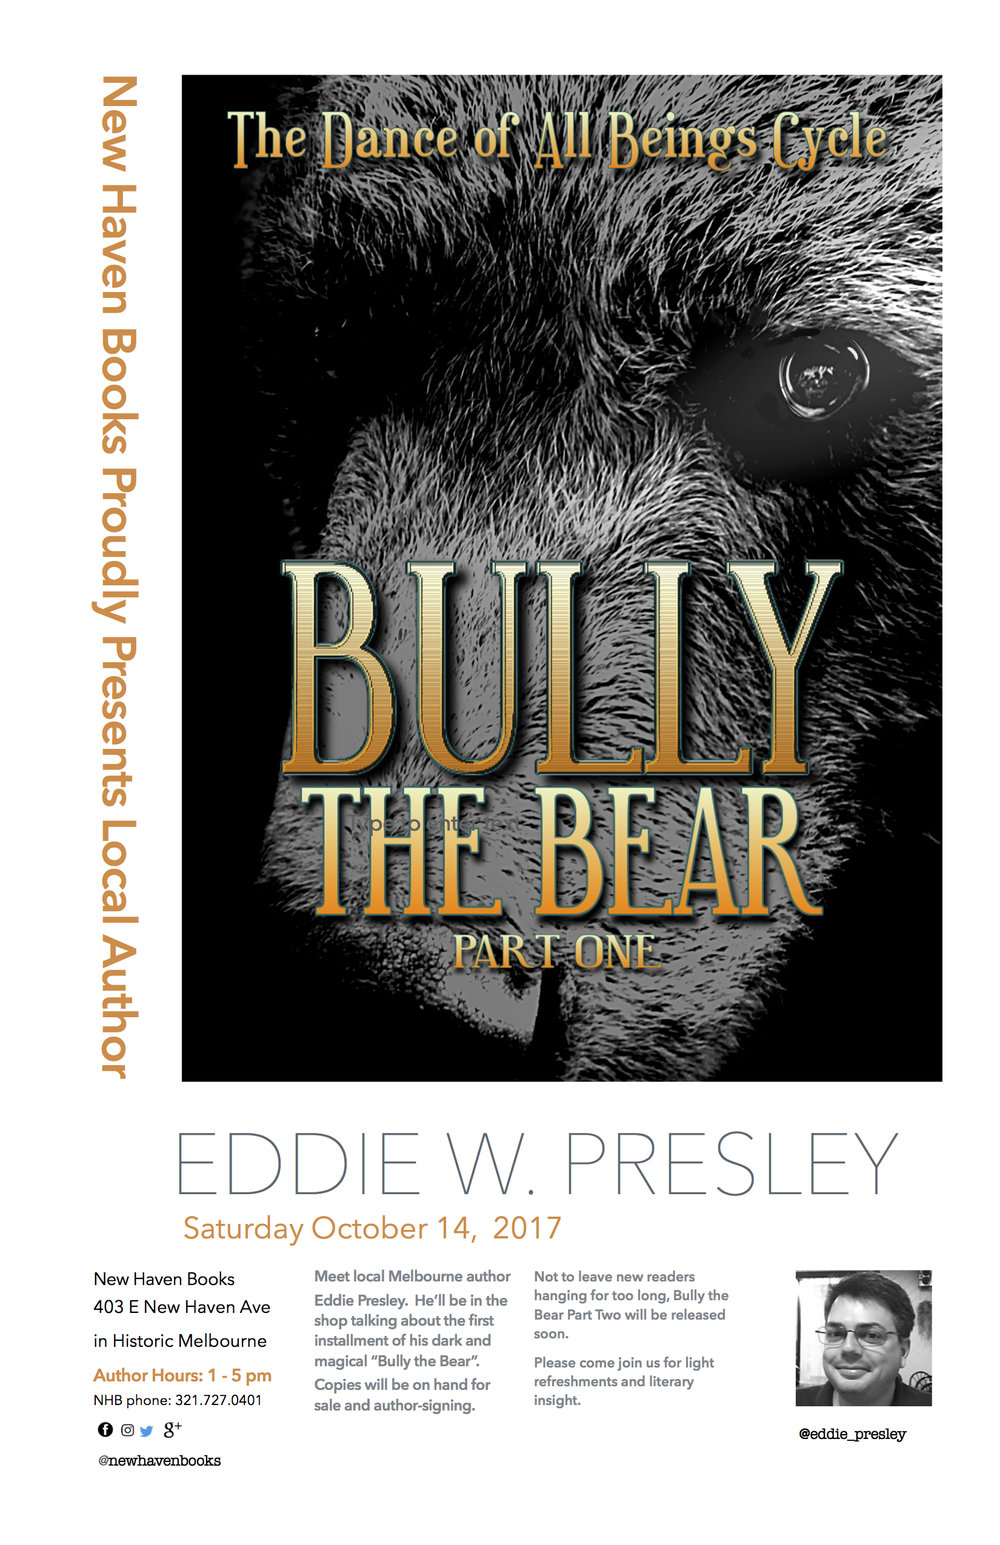 Presley Author Poster Oct 14.jpg